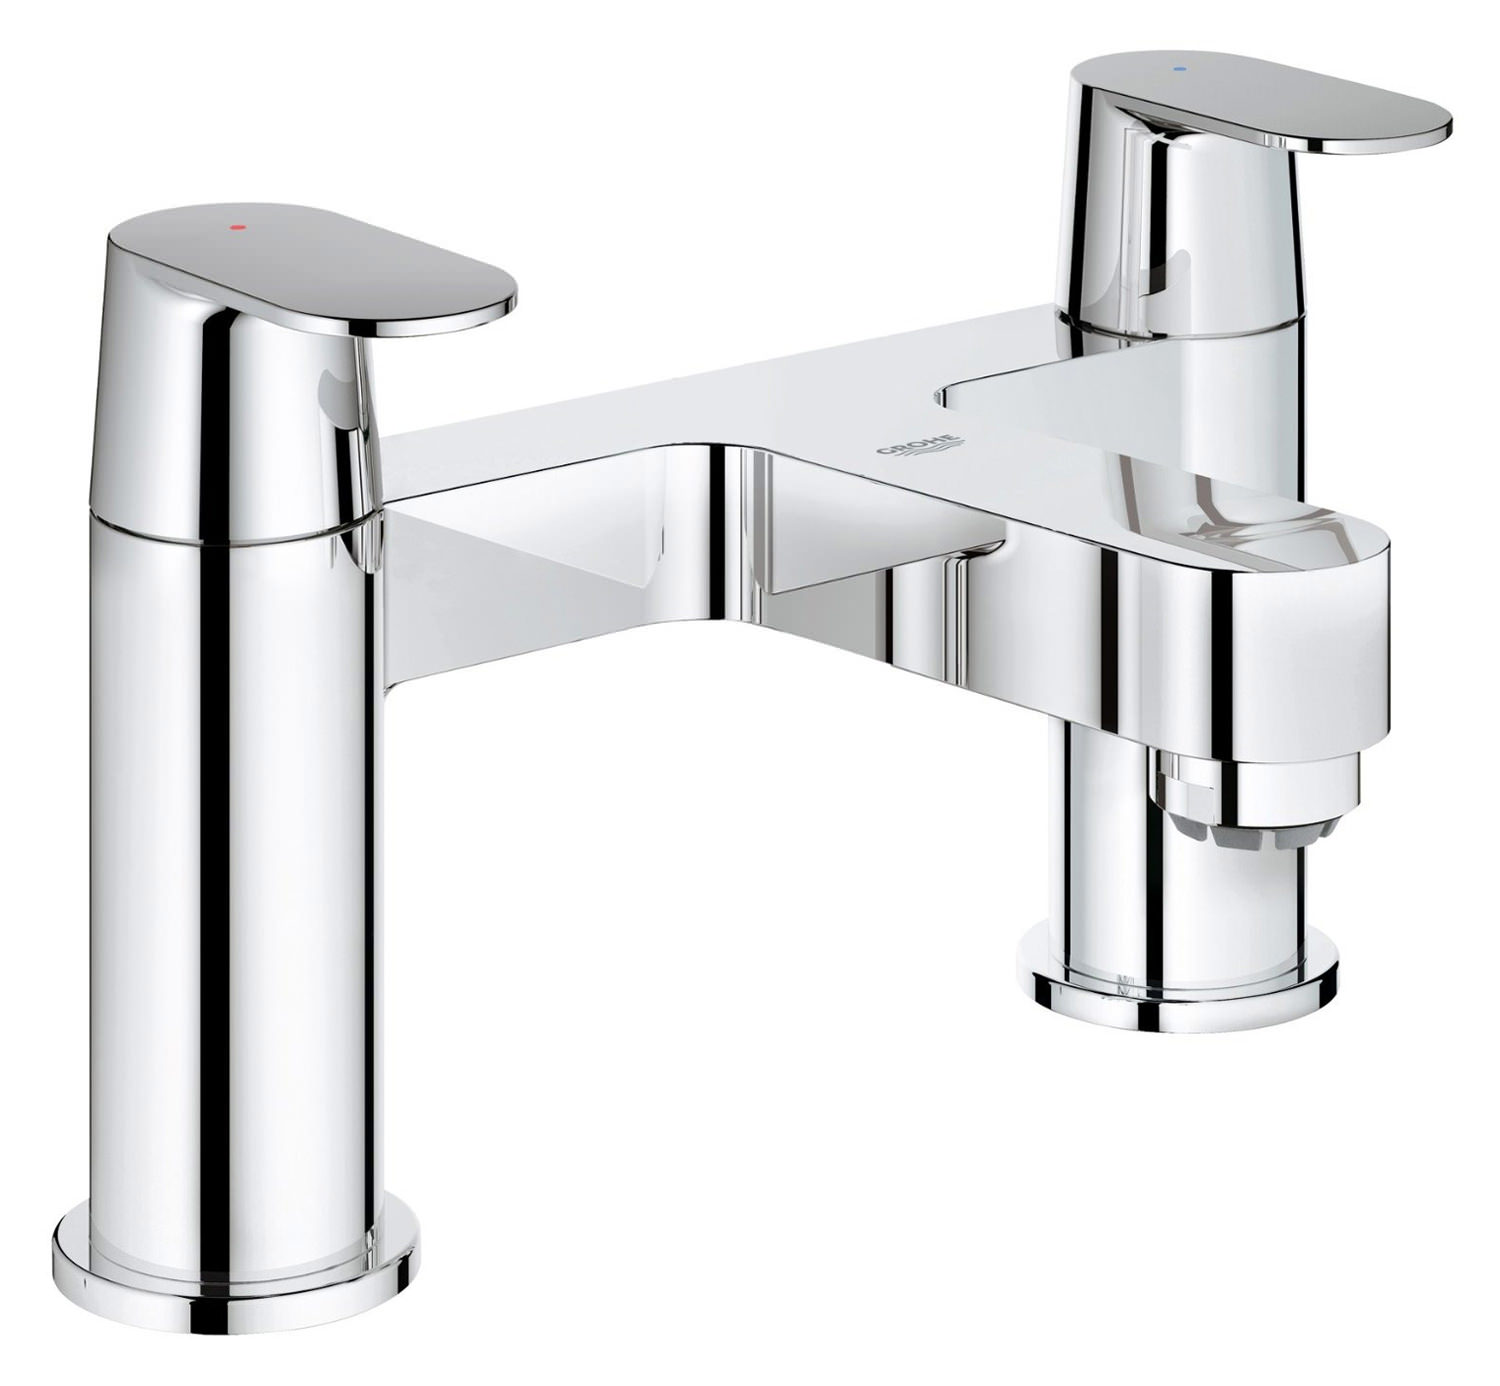 Gut Eurosmart Cosmo Deck Mounted Bath Filler Tap - 25128000 CX76